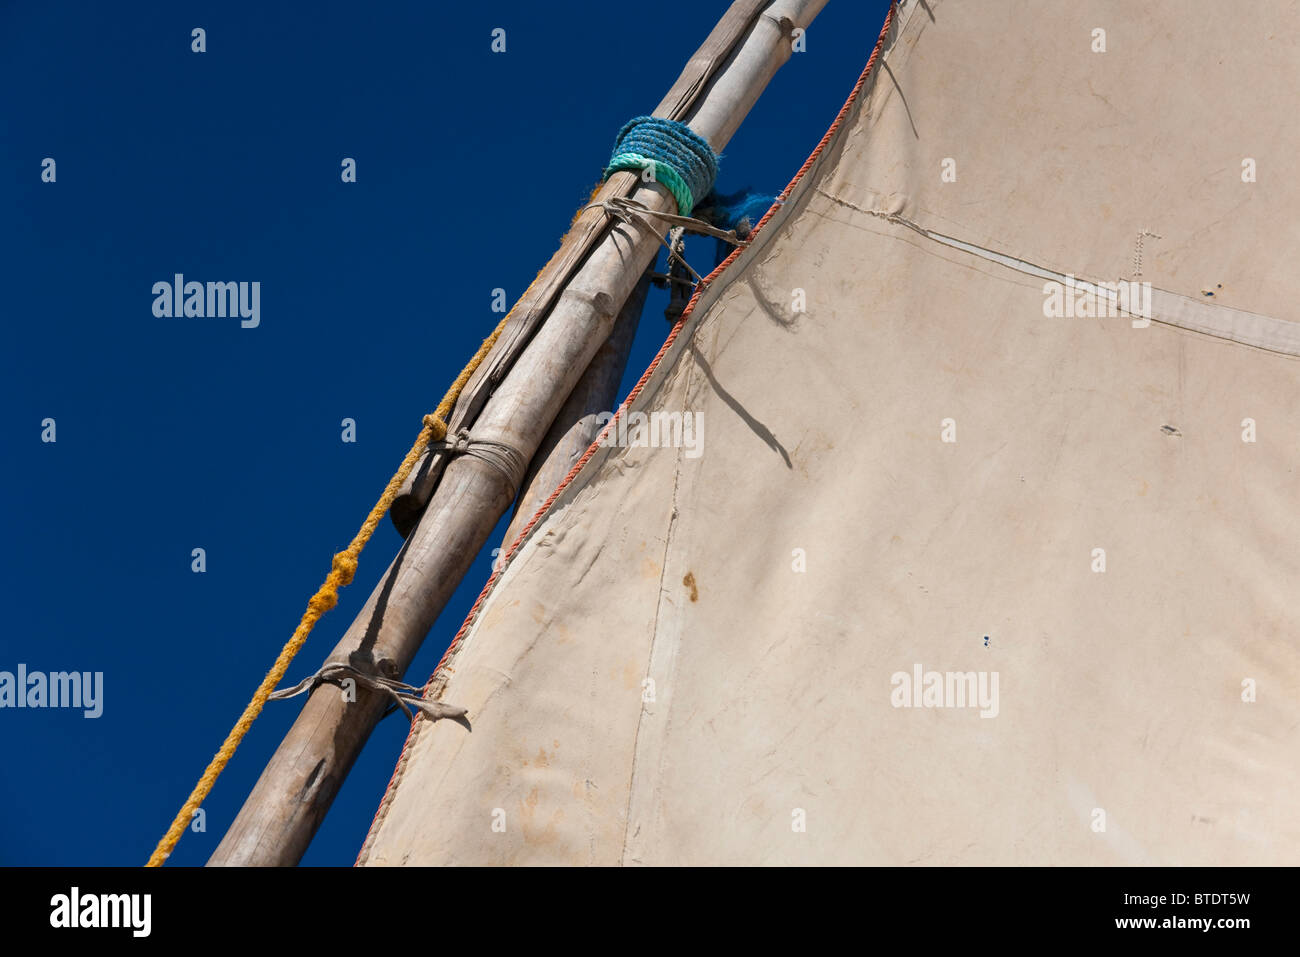 Canvas sail attached to the mast of a dhow - Stock Image